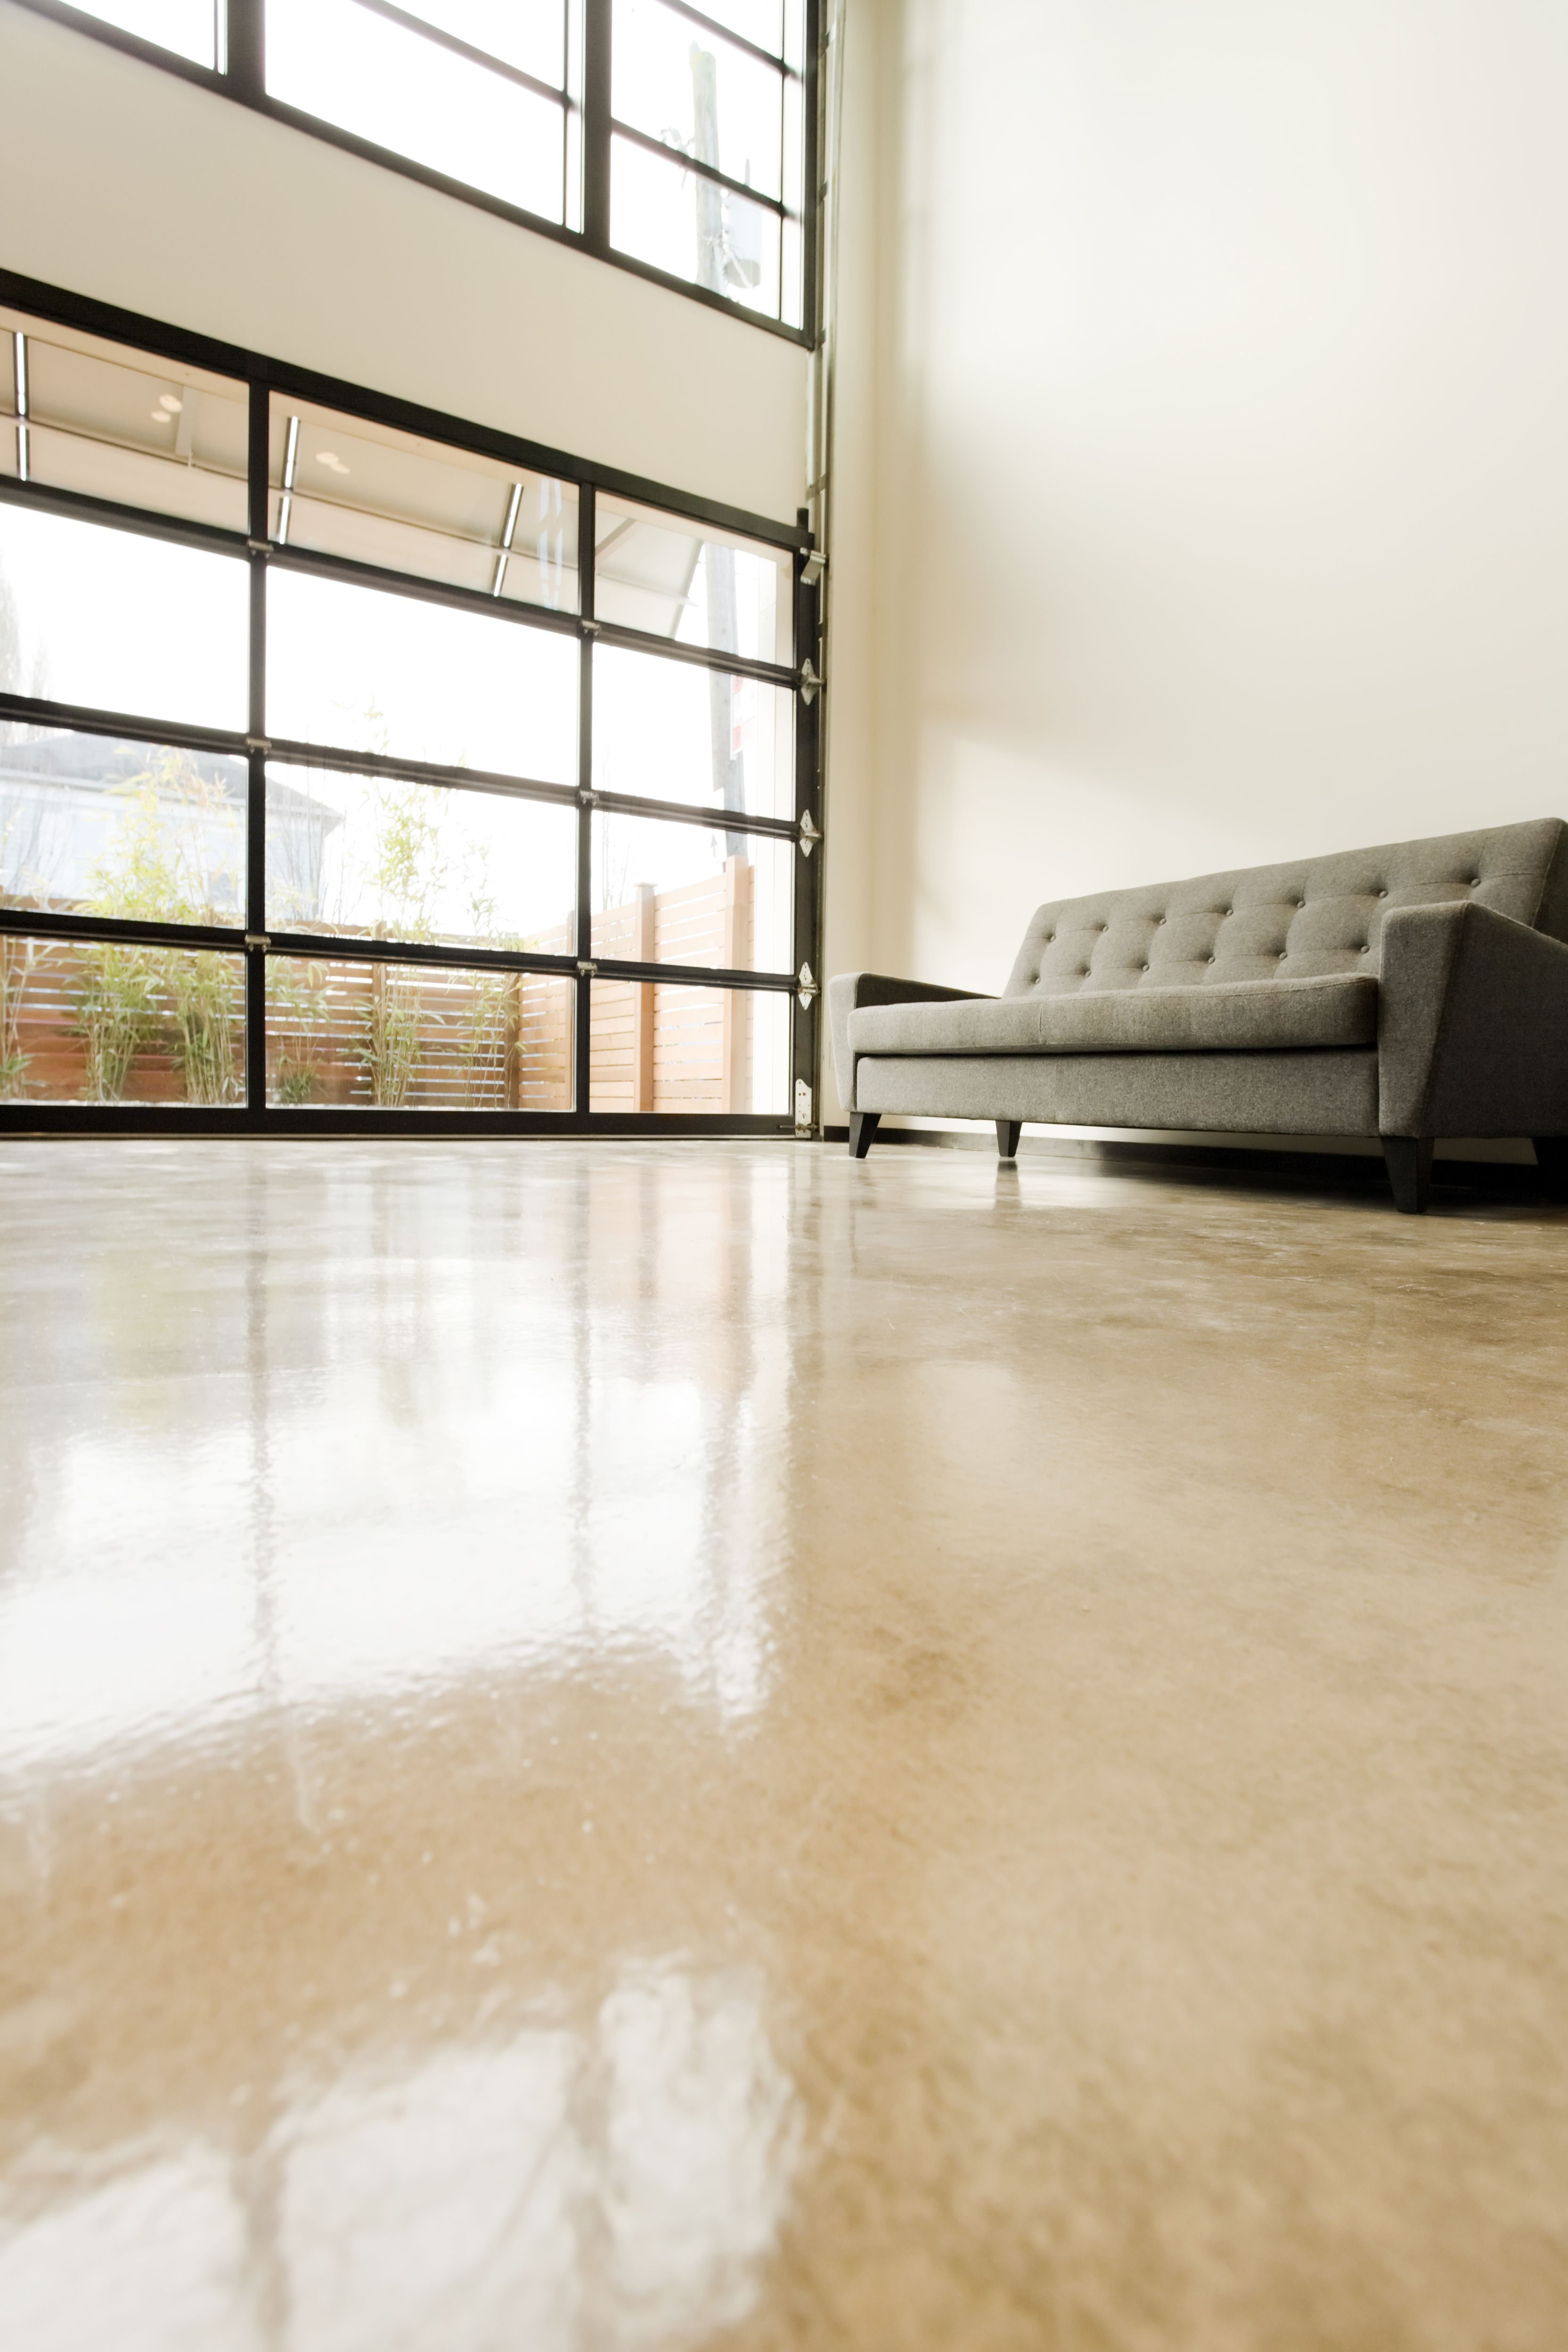 2020 How Much Does a Polished Concrete Floor Cost? in 2020